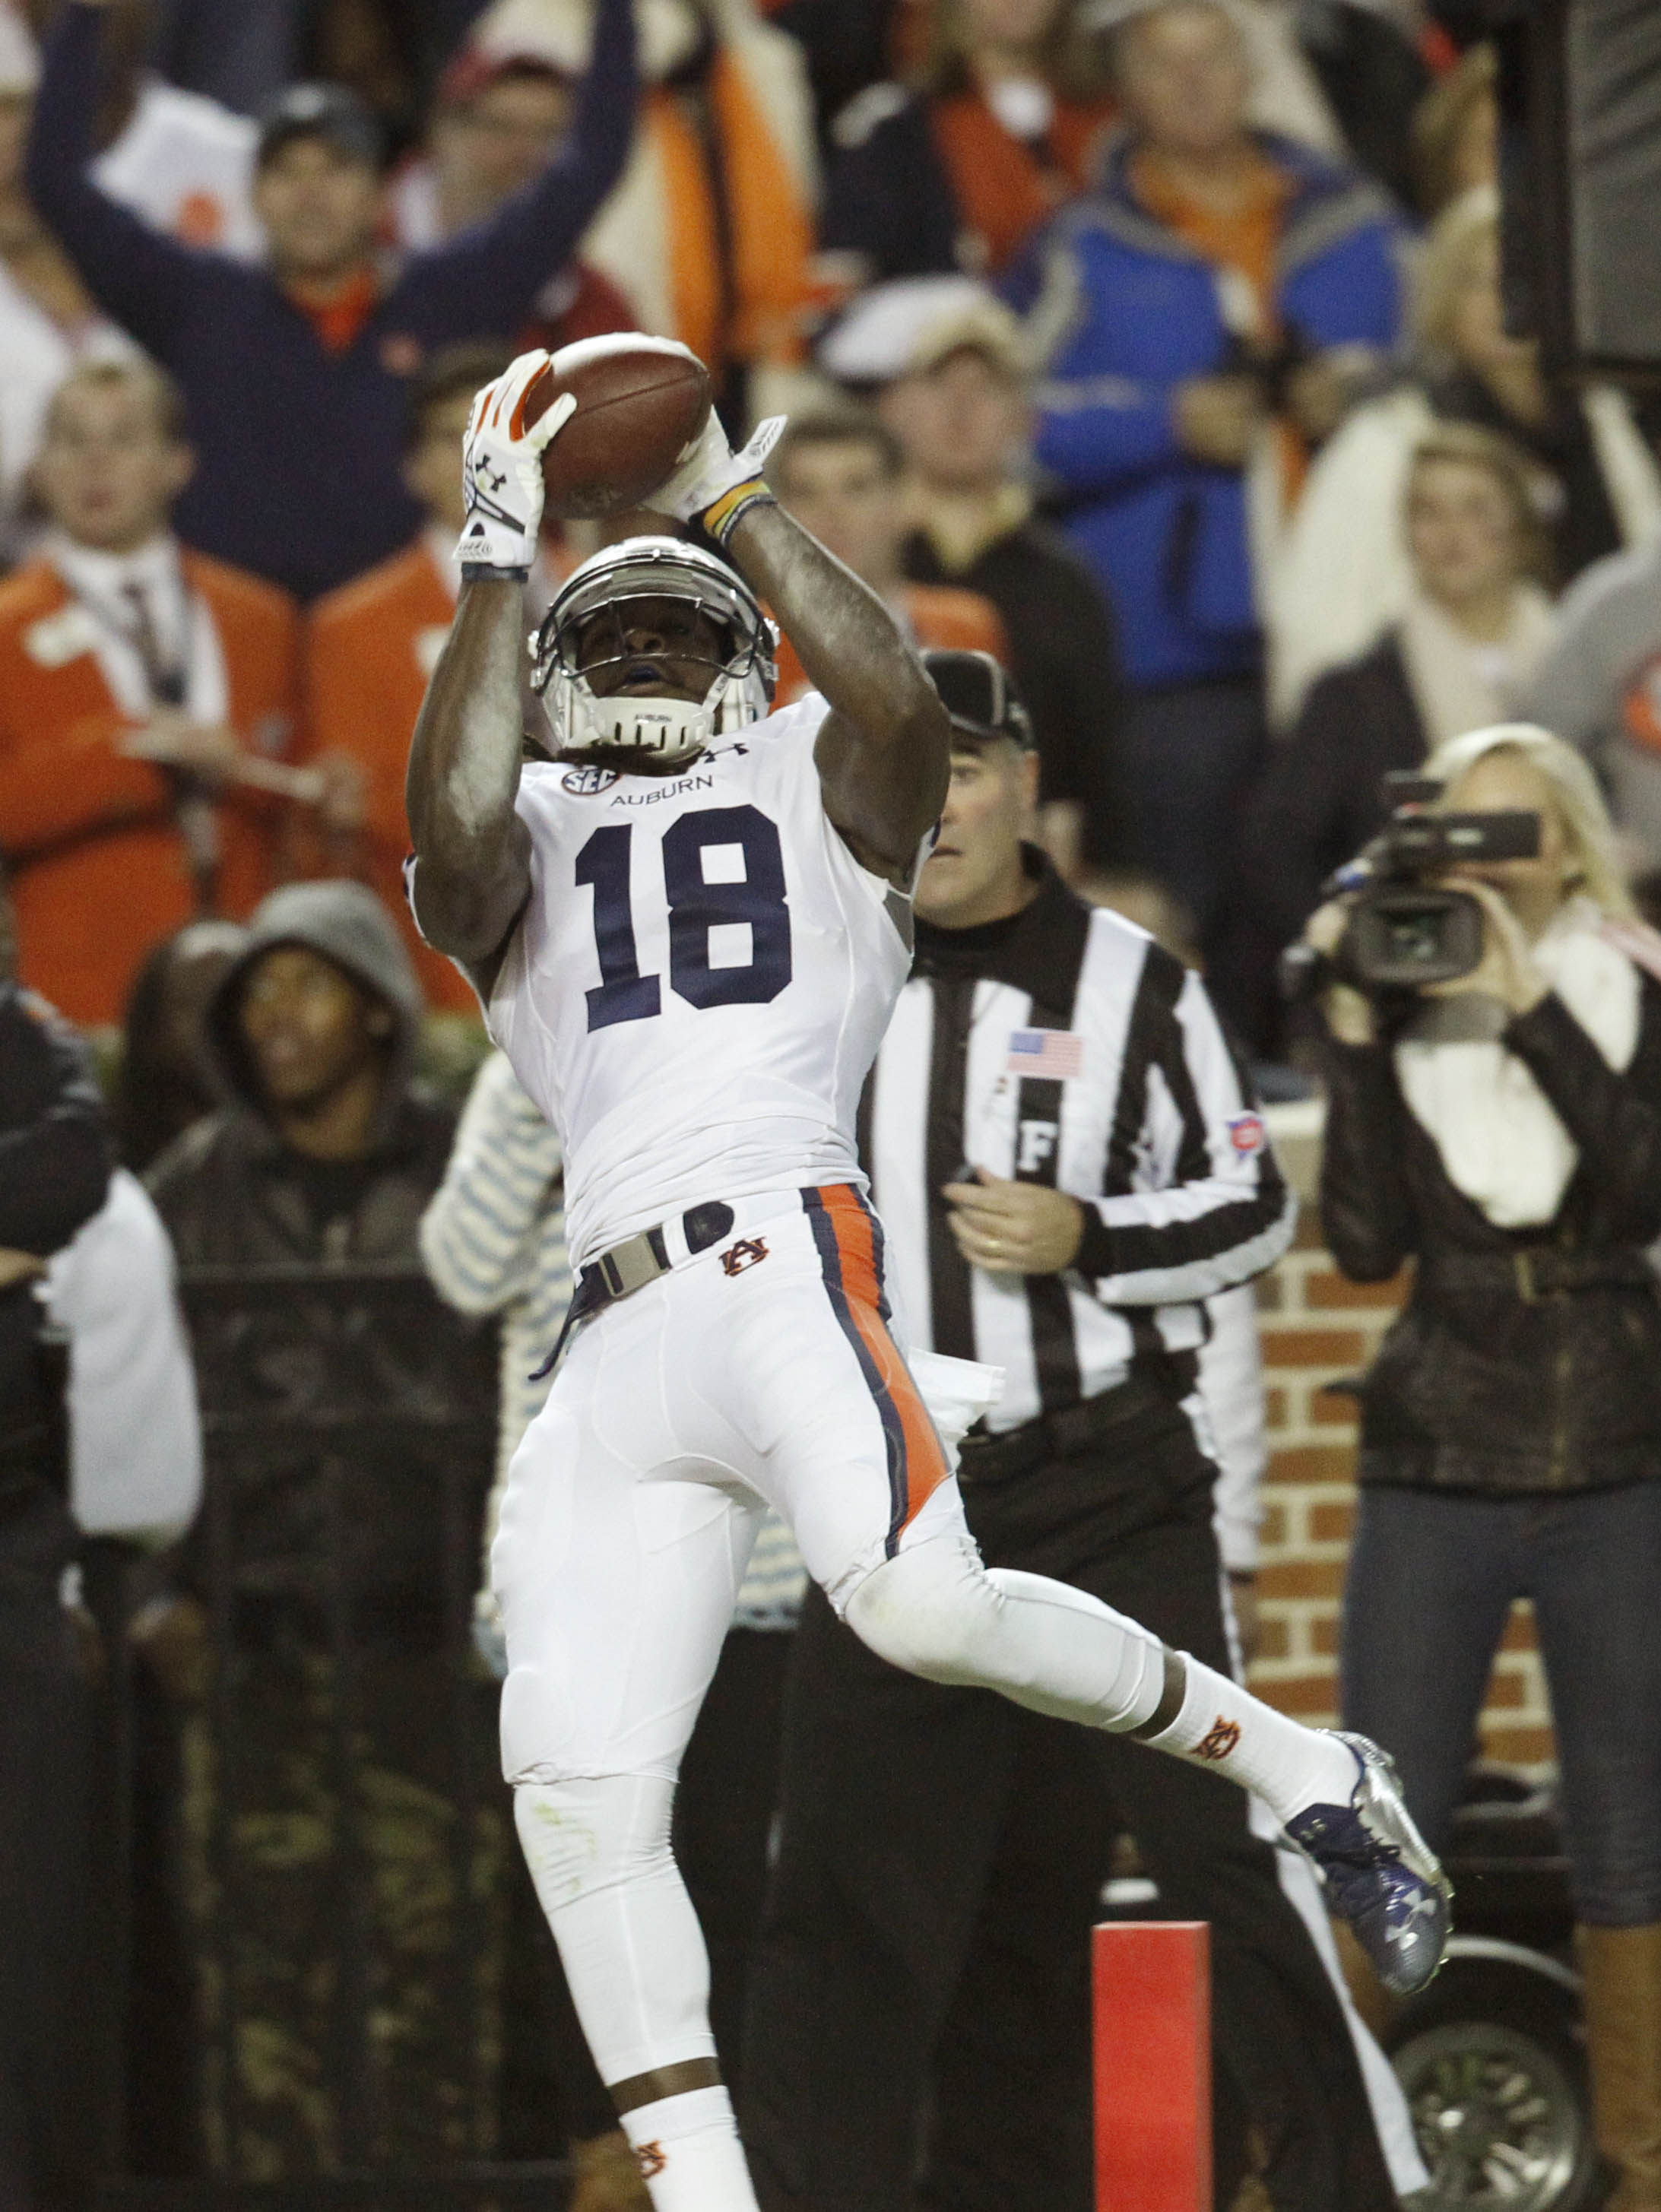 Nov 29, 2014; Tuscaloosa, AL, USA; Auburn Tigers wide receiver Sammie Coates (18) catches a second quarter touchdown pass Alabama Crimson Tide at Bryant-Denny Stadium. (Marvin Gentry-USA TODAY Sports)